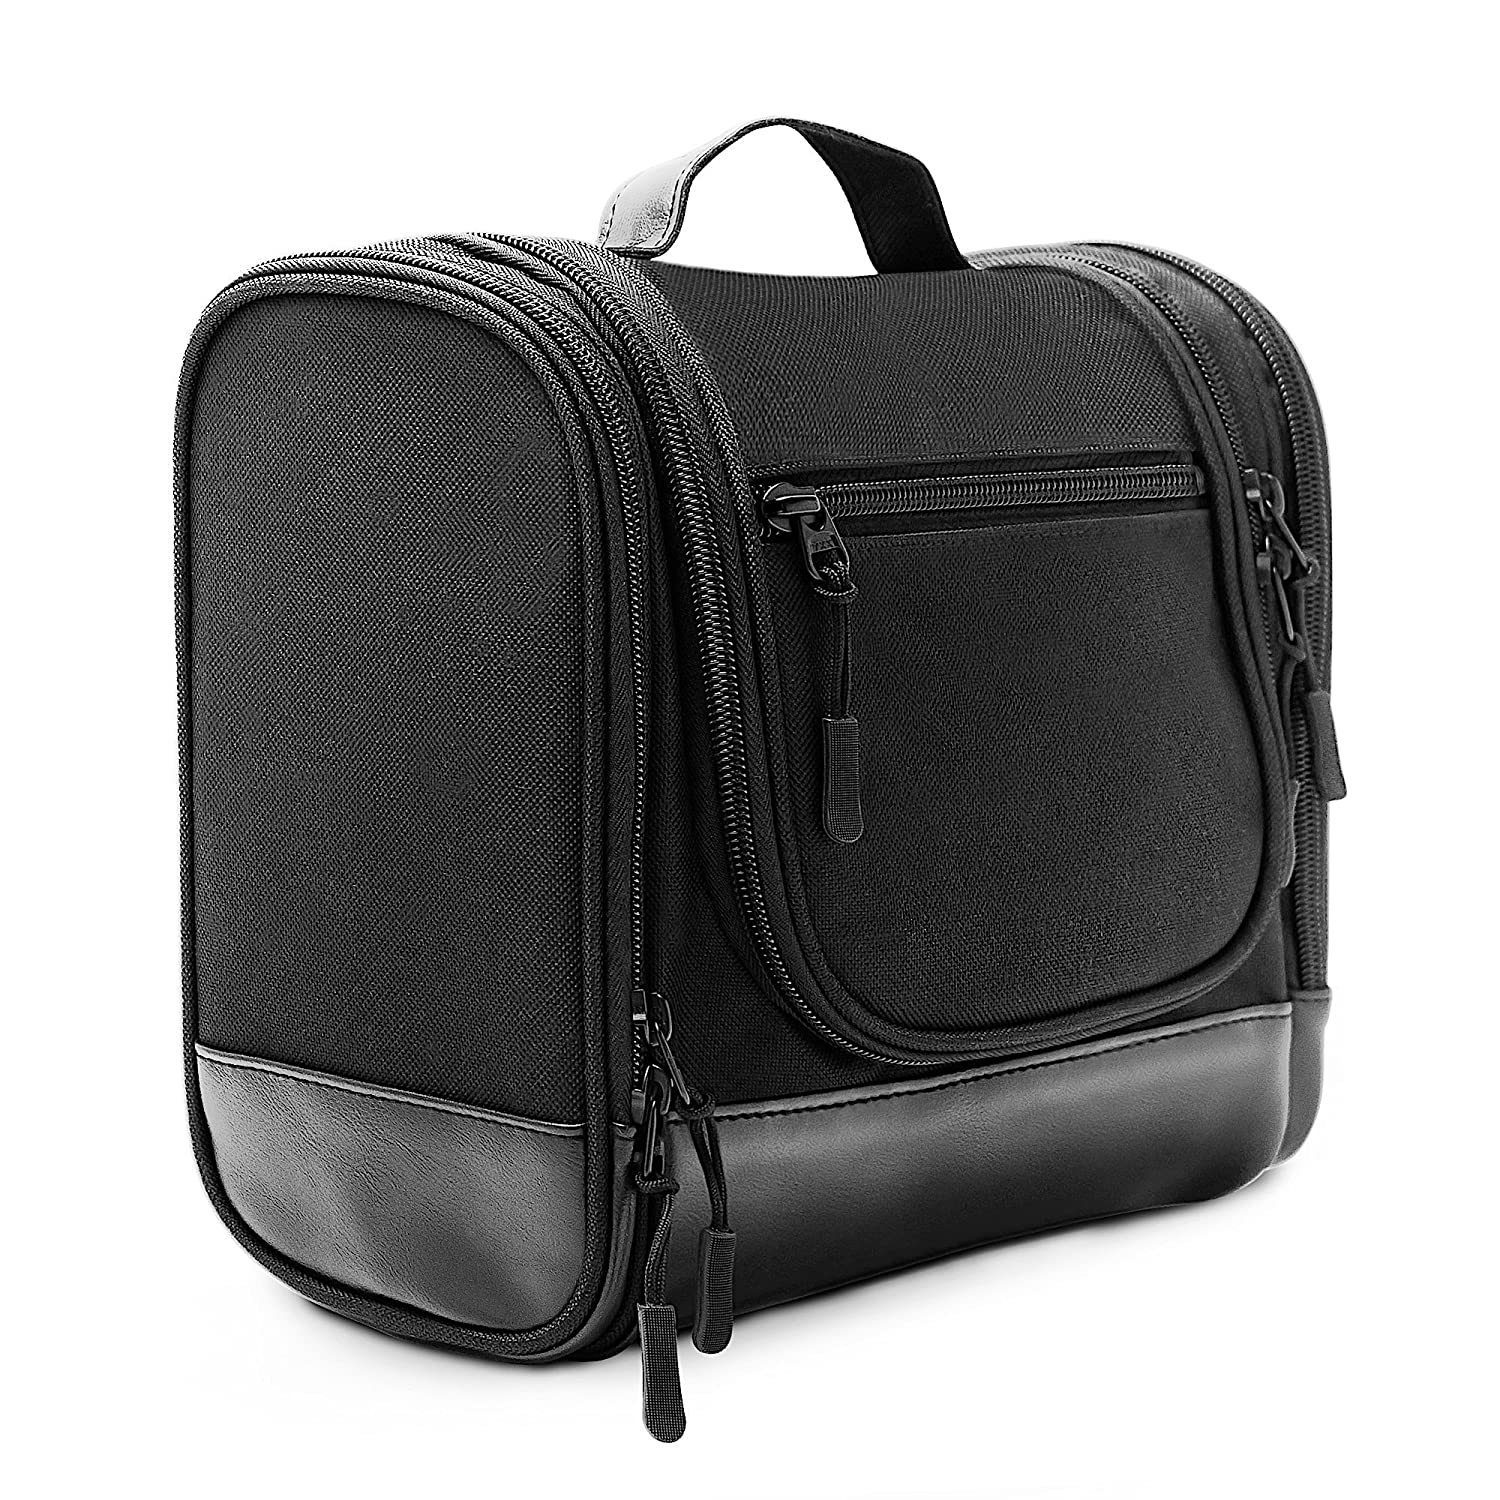 ec2f89ca21 Hanging Travel Toiletry Bag Nz